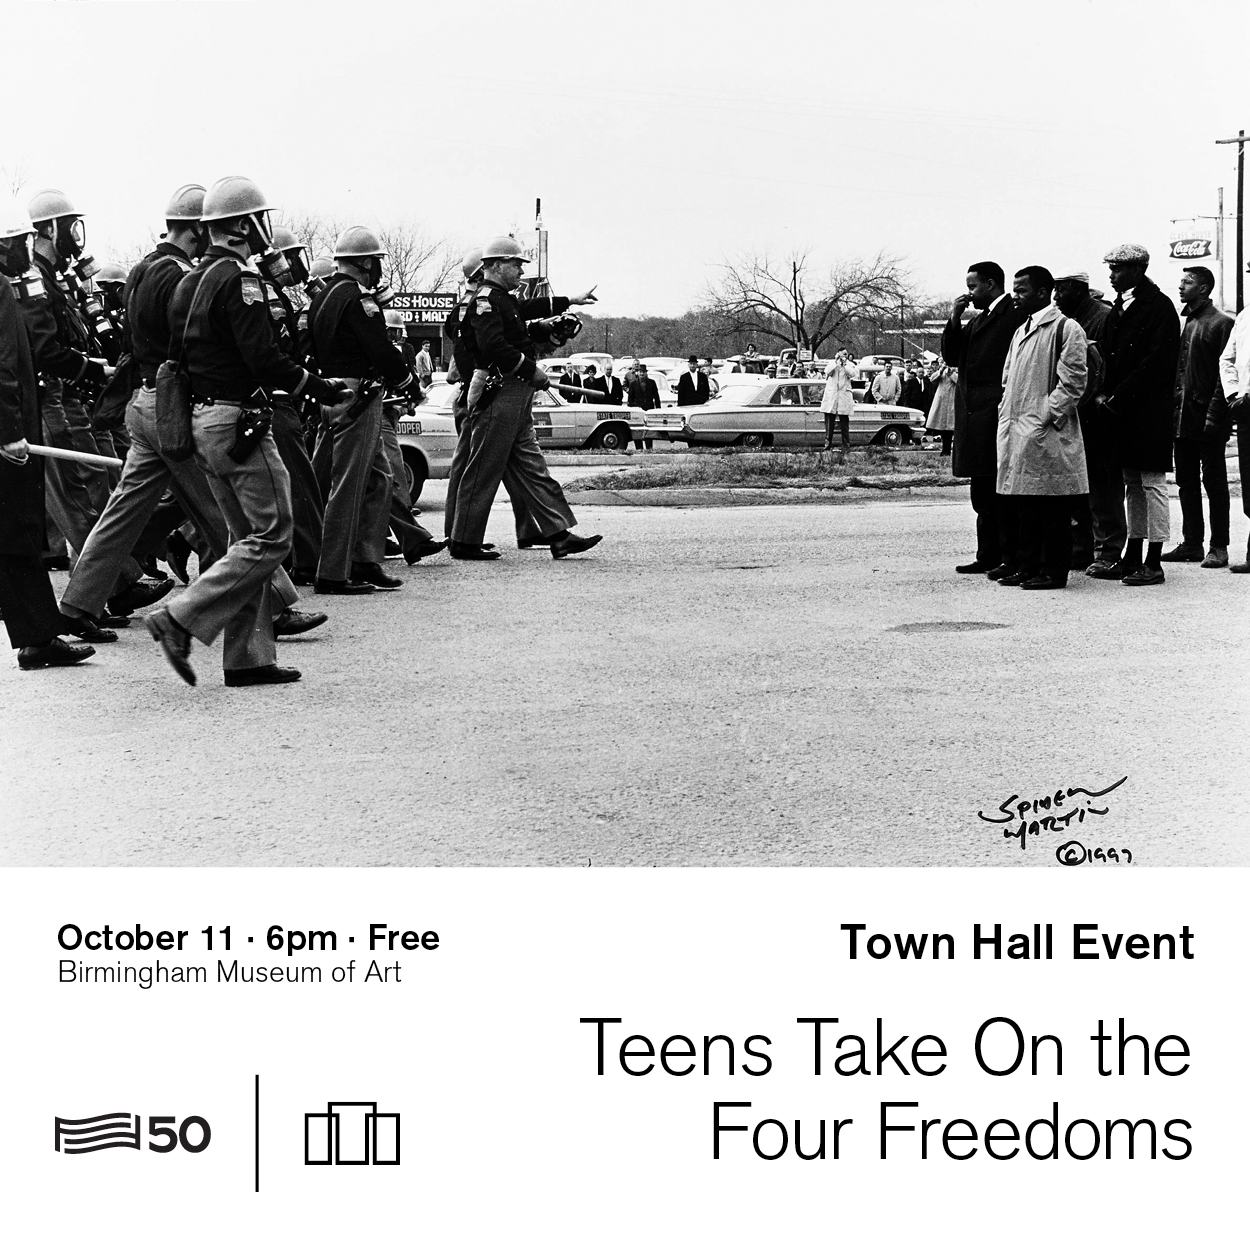 Birmingham Museum of Art to host For Freedoms: Civil Rights and Human Rights Town Hall